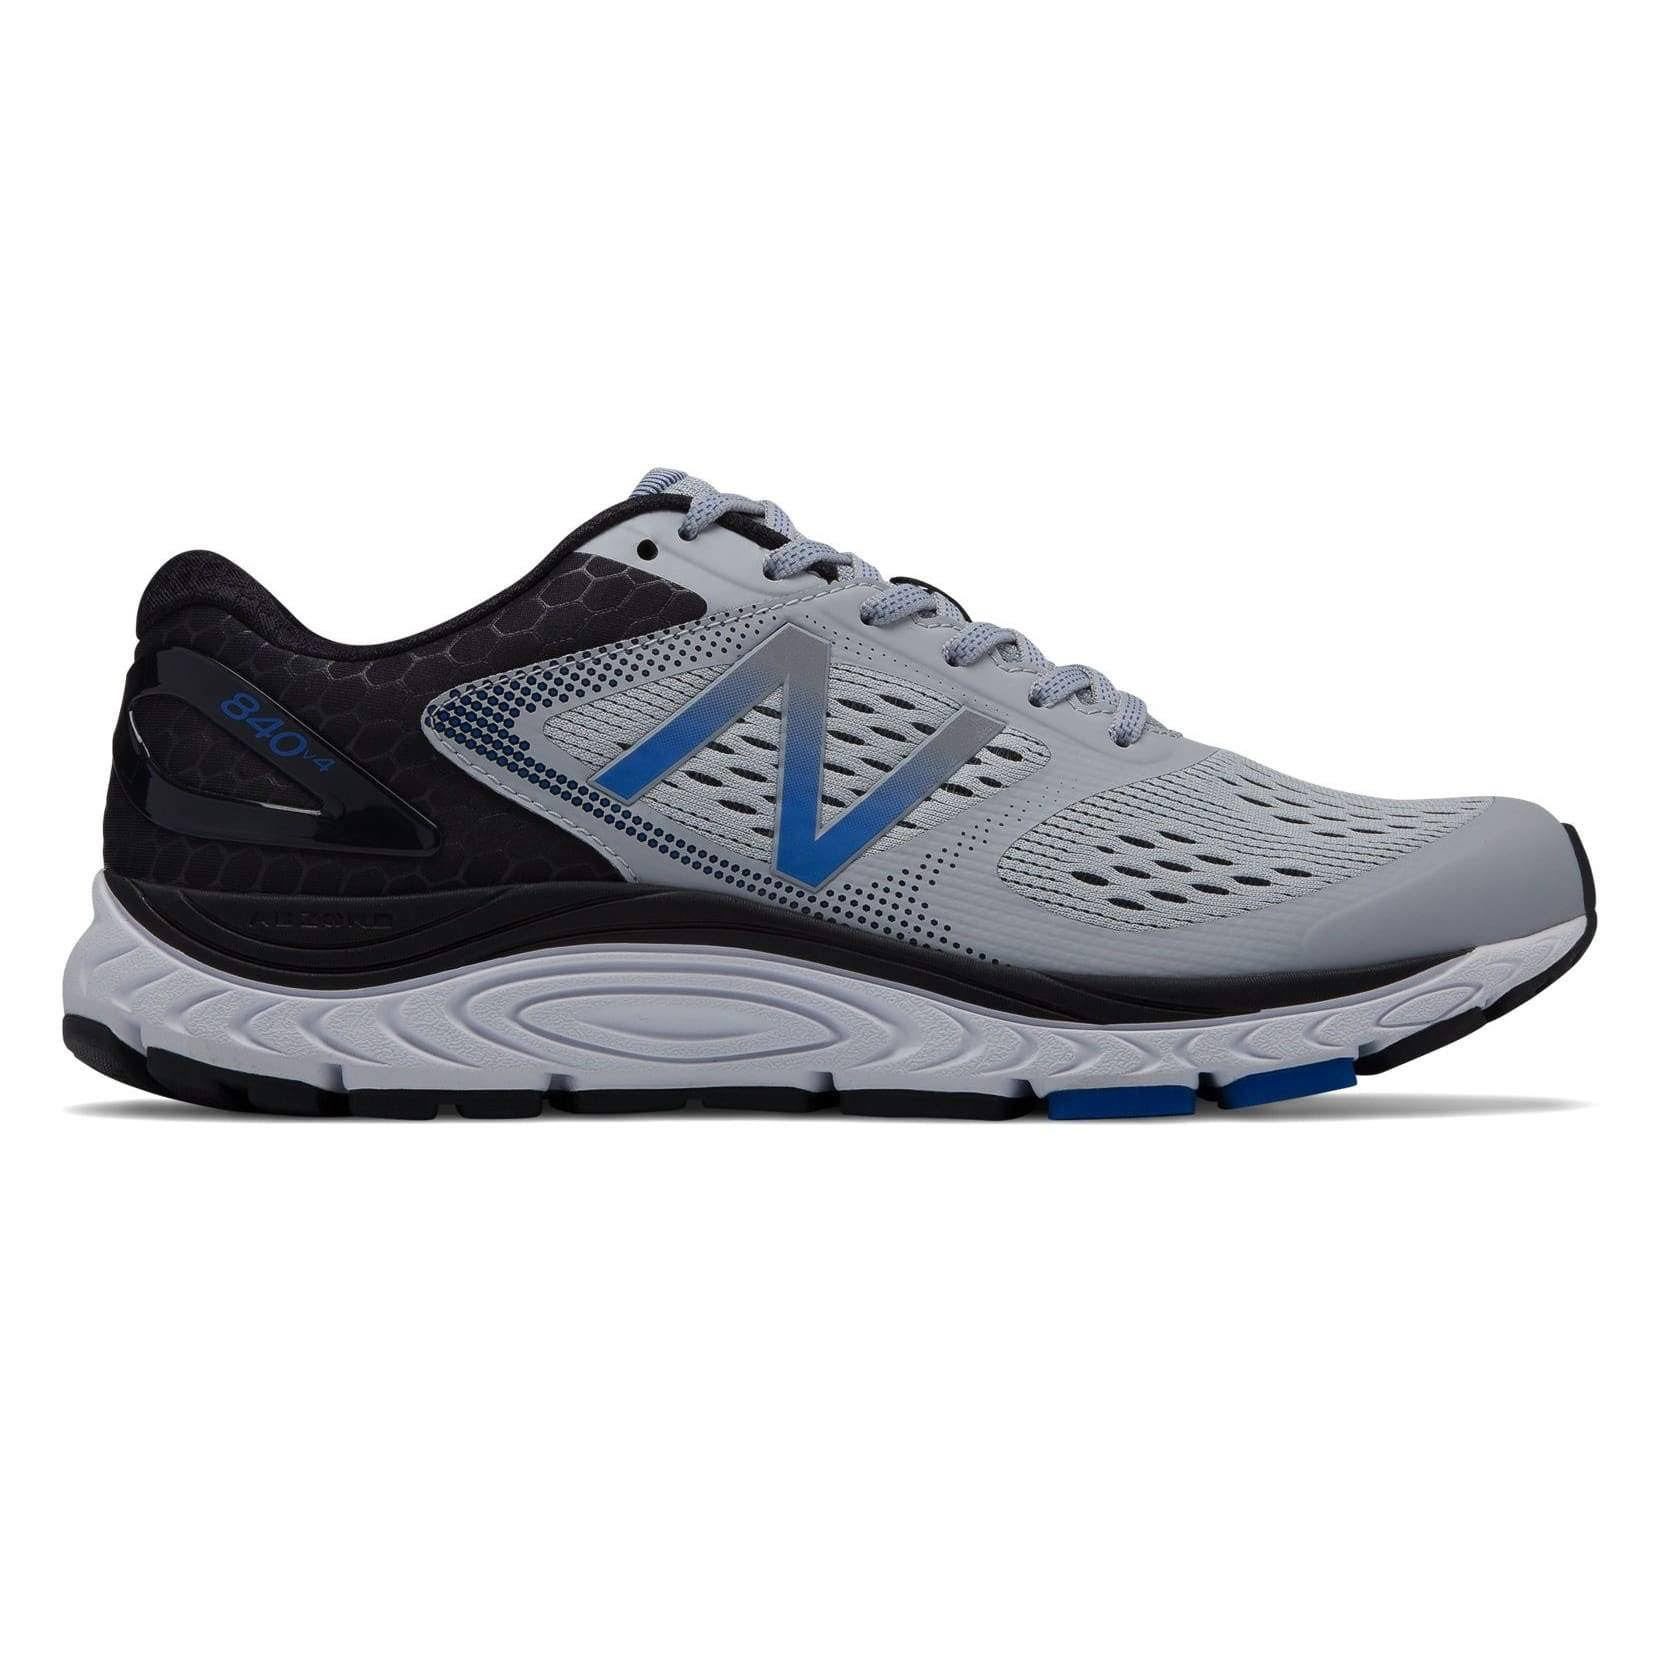 New Balance 840v4 Men's Running Shoes Silver Mink/Team Blue : 11.5 4E - Extra Wide